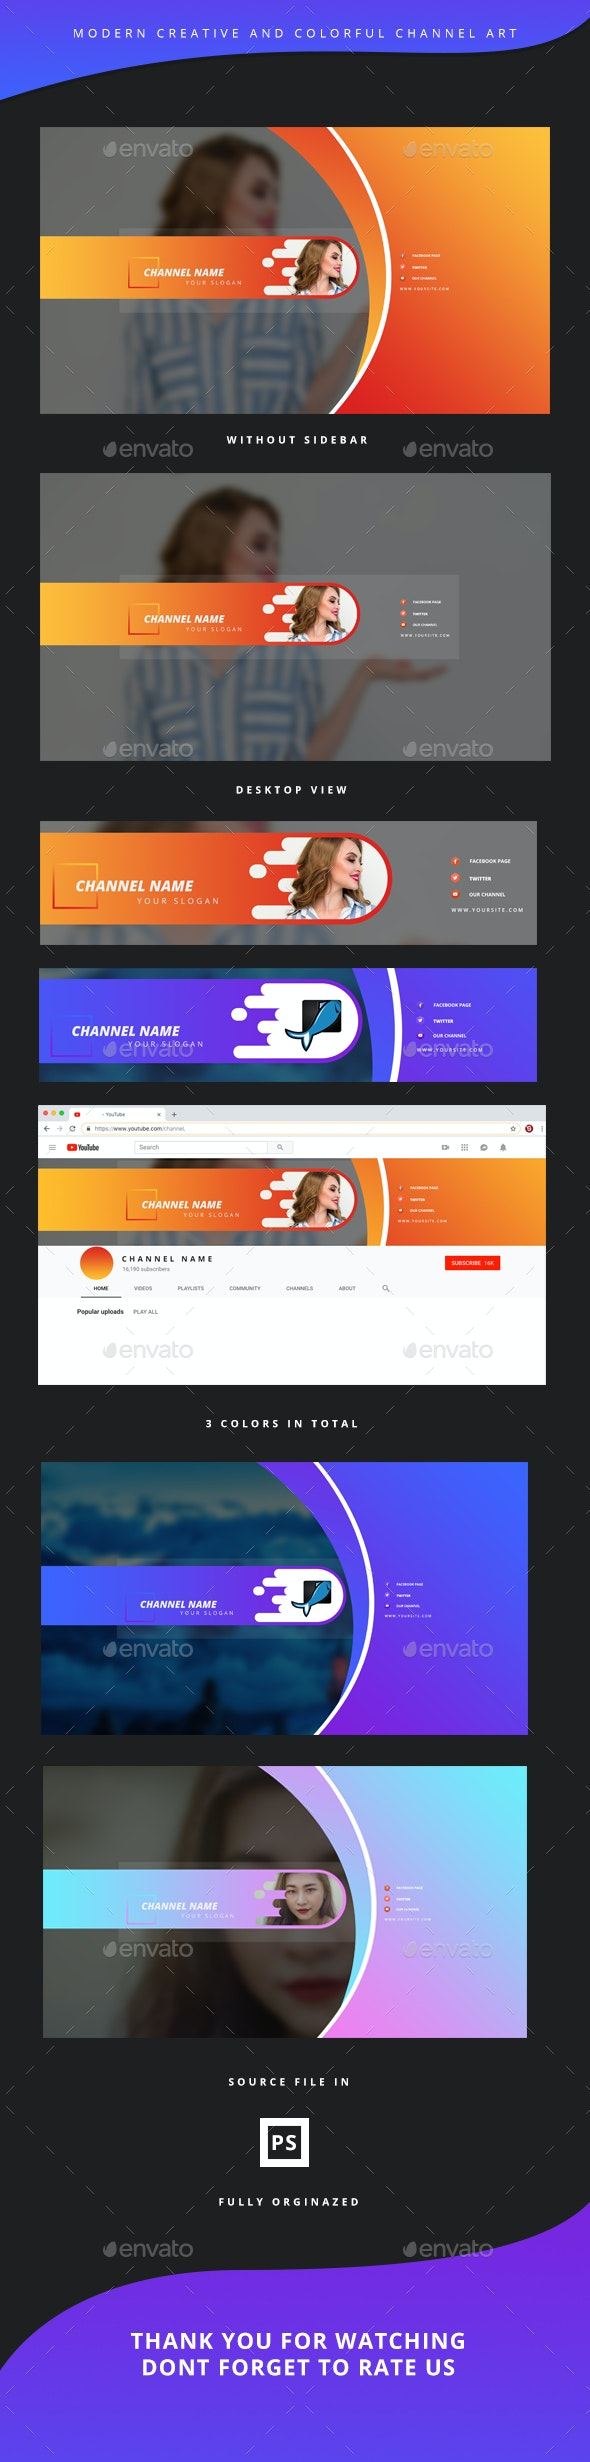 Youtube Creative Colorful Channel Art - YouTube Social Media